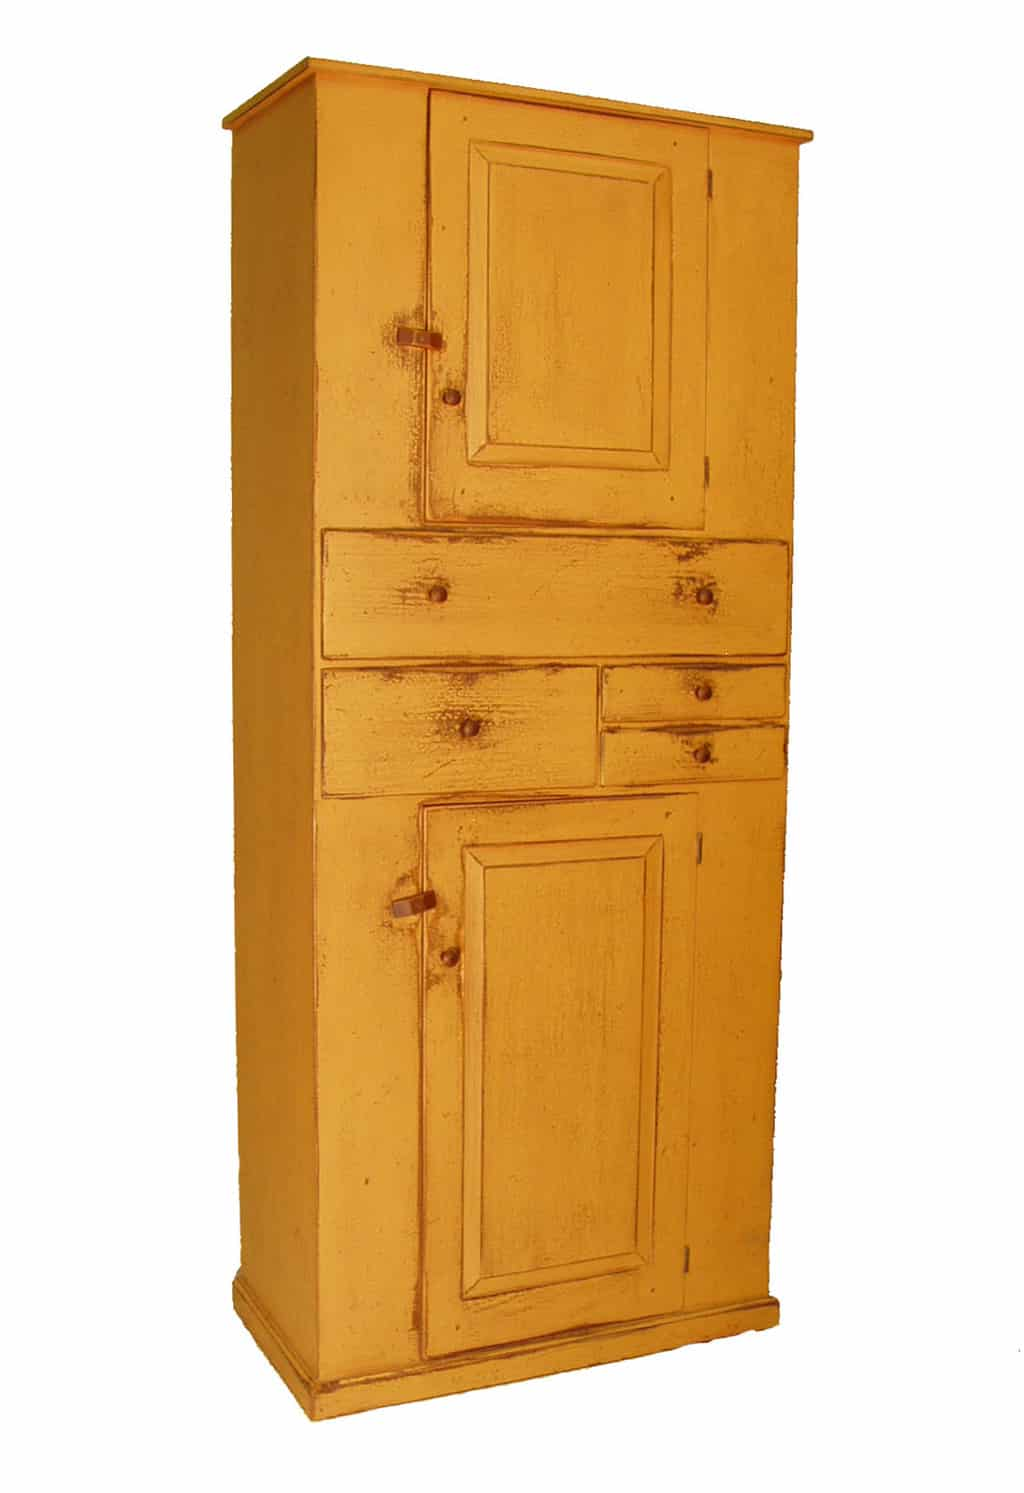 Historical Shaker Wall Cupboard Image